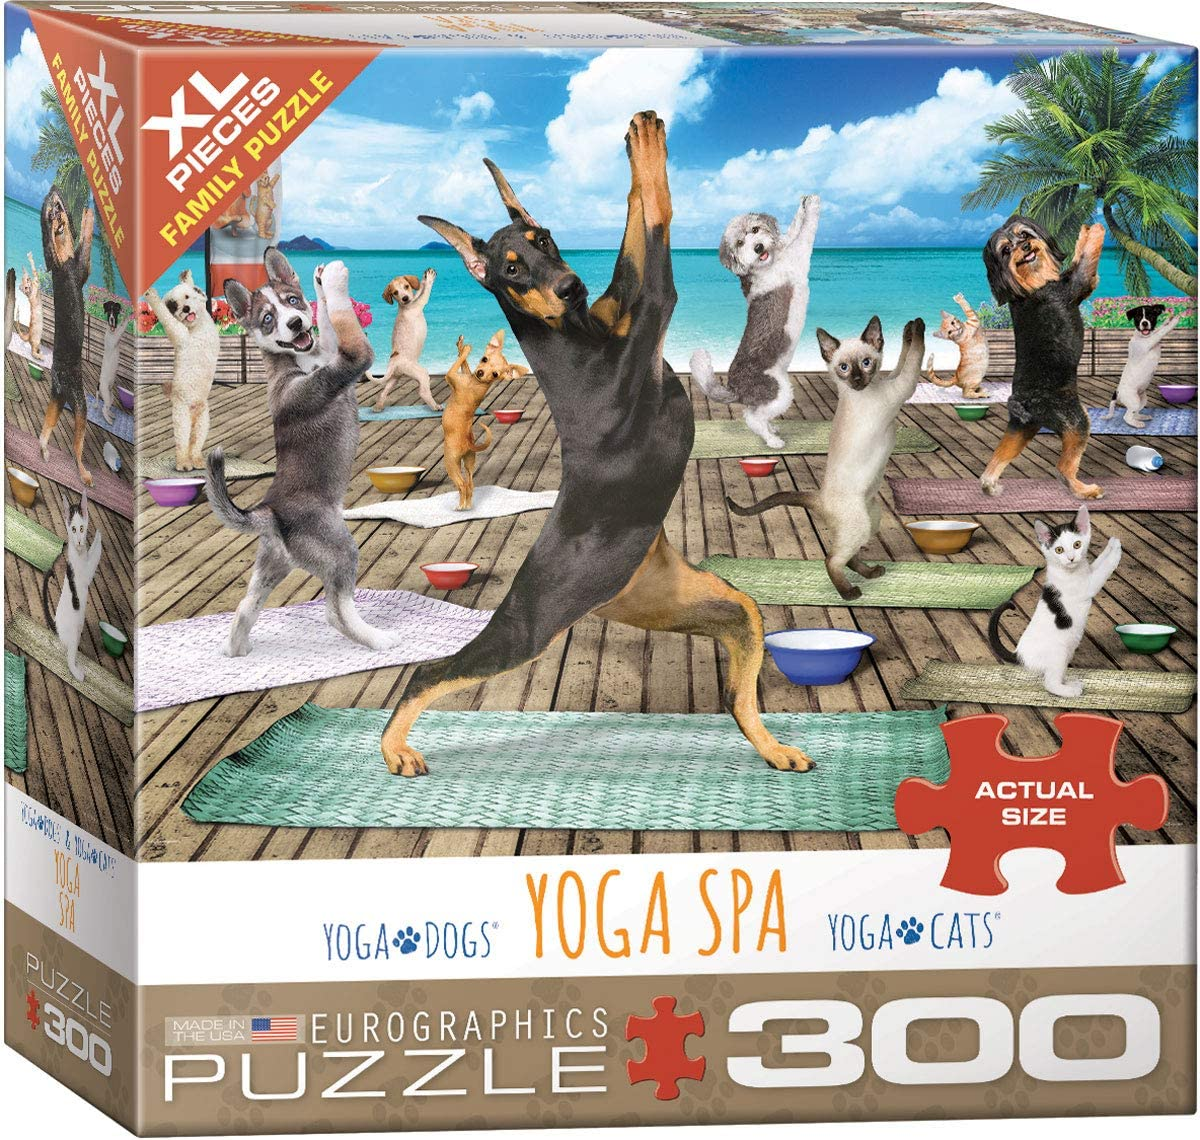 Amazon.com: Yoga Spa 300Piece Puzzle: Toys & Games